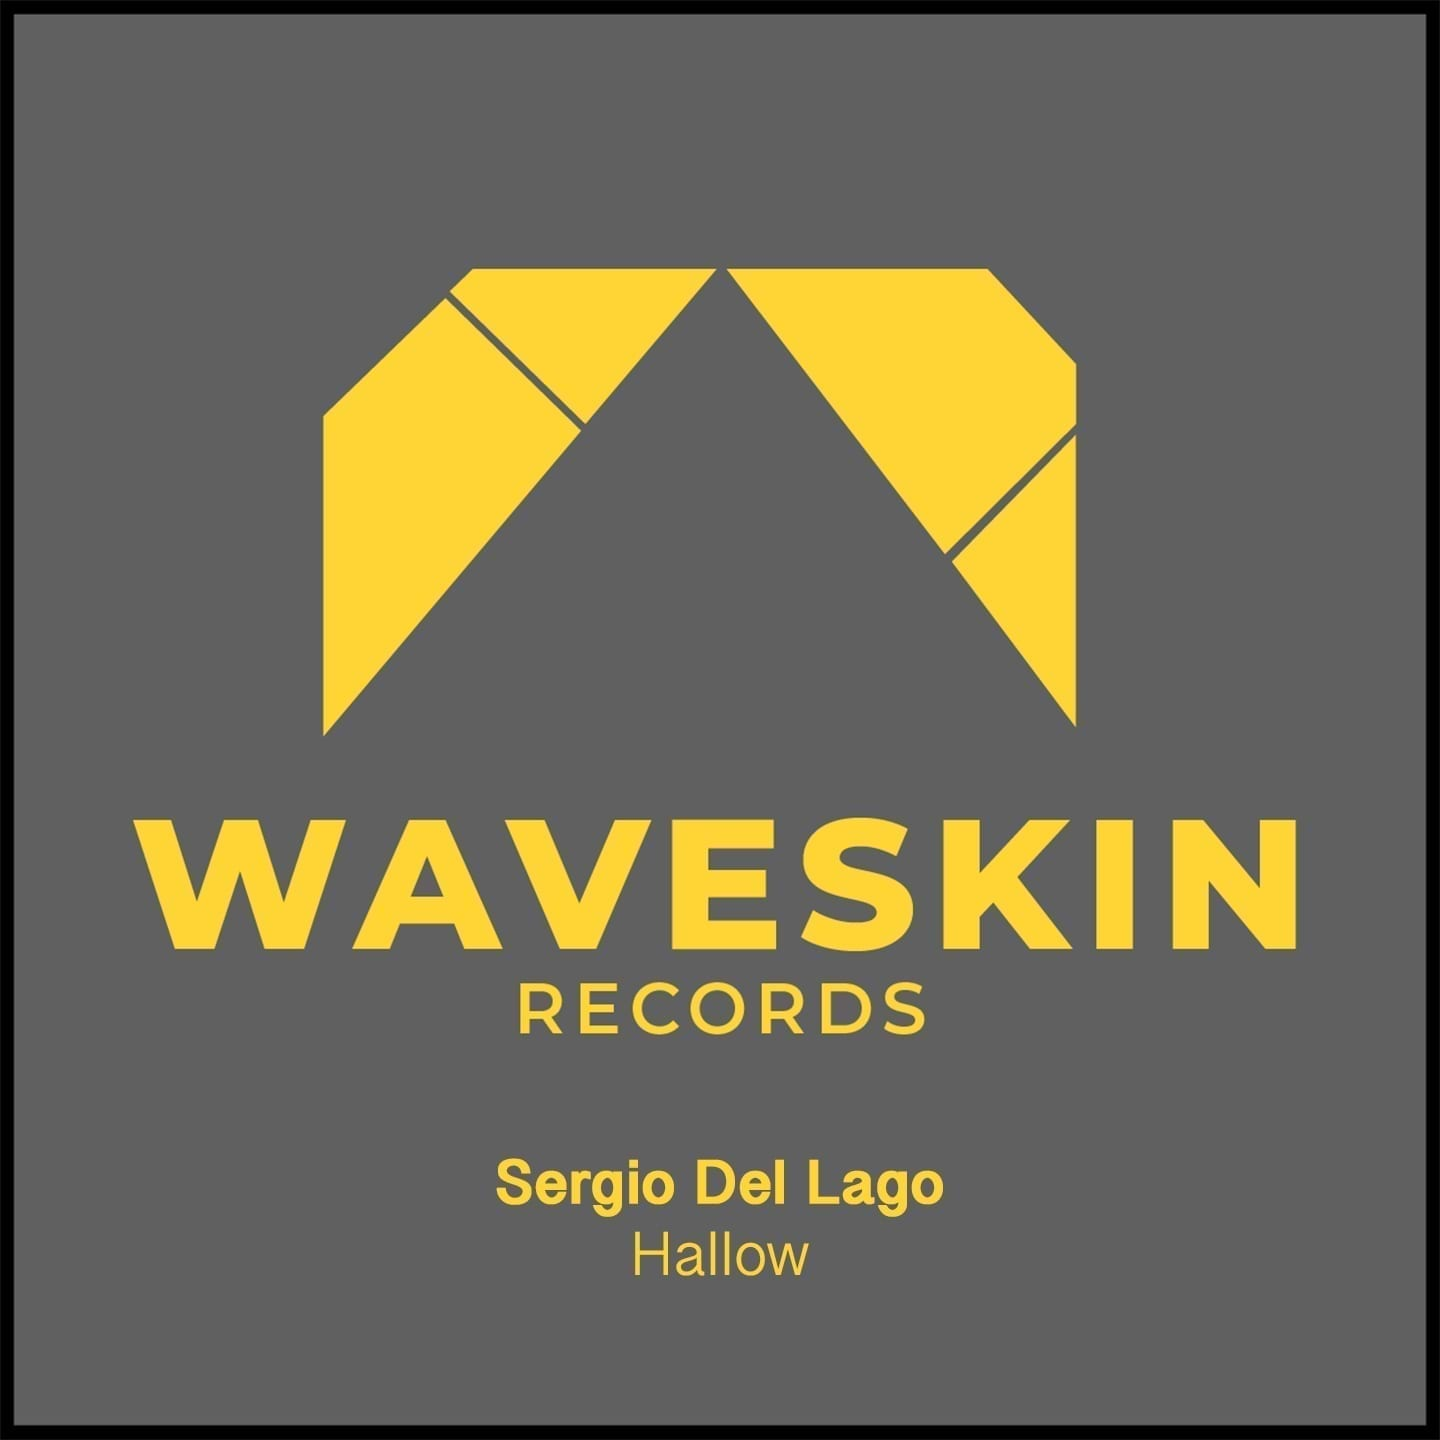 """Waveskin Records makes its debut with """"Hallow"""" by the Italian artist Sergio Del Lago"""